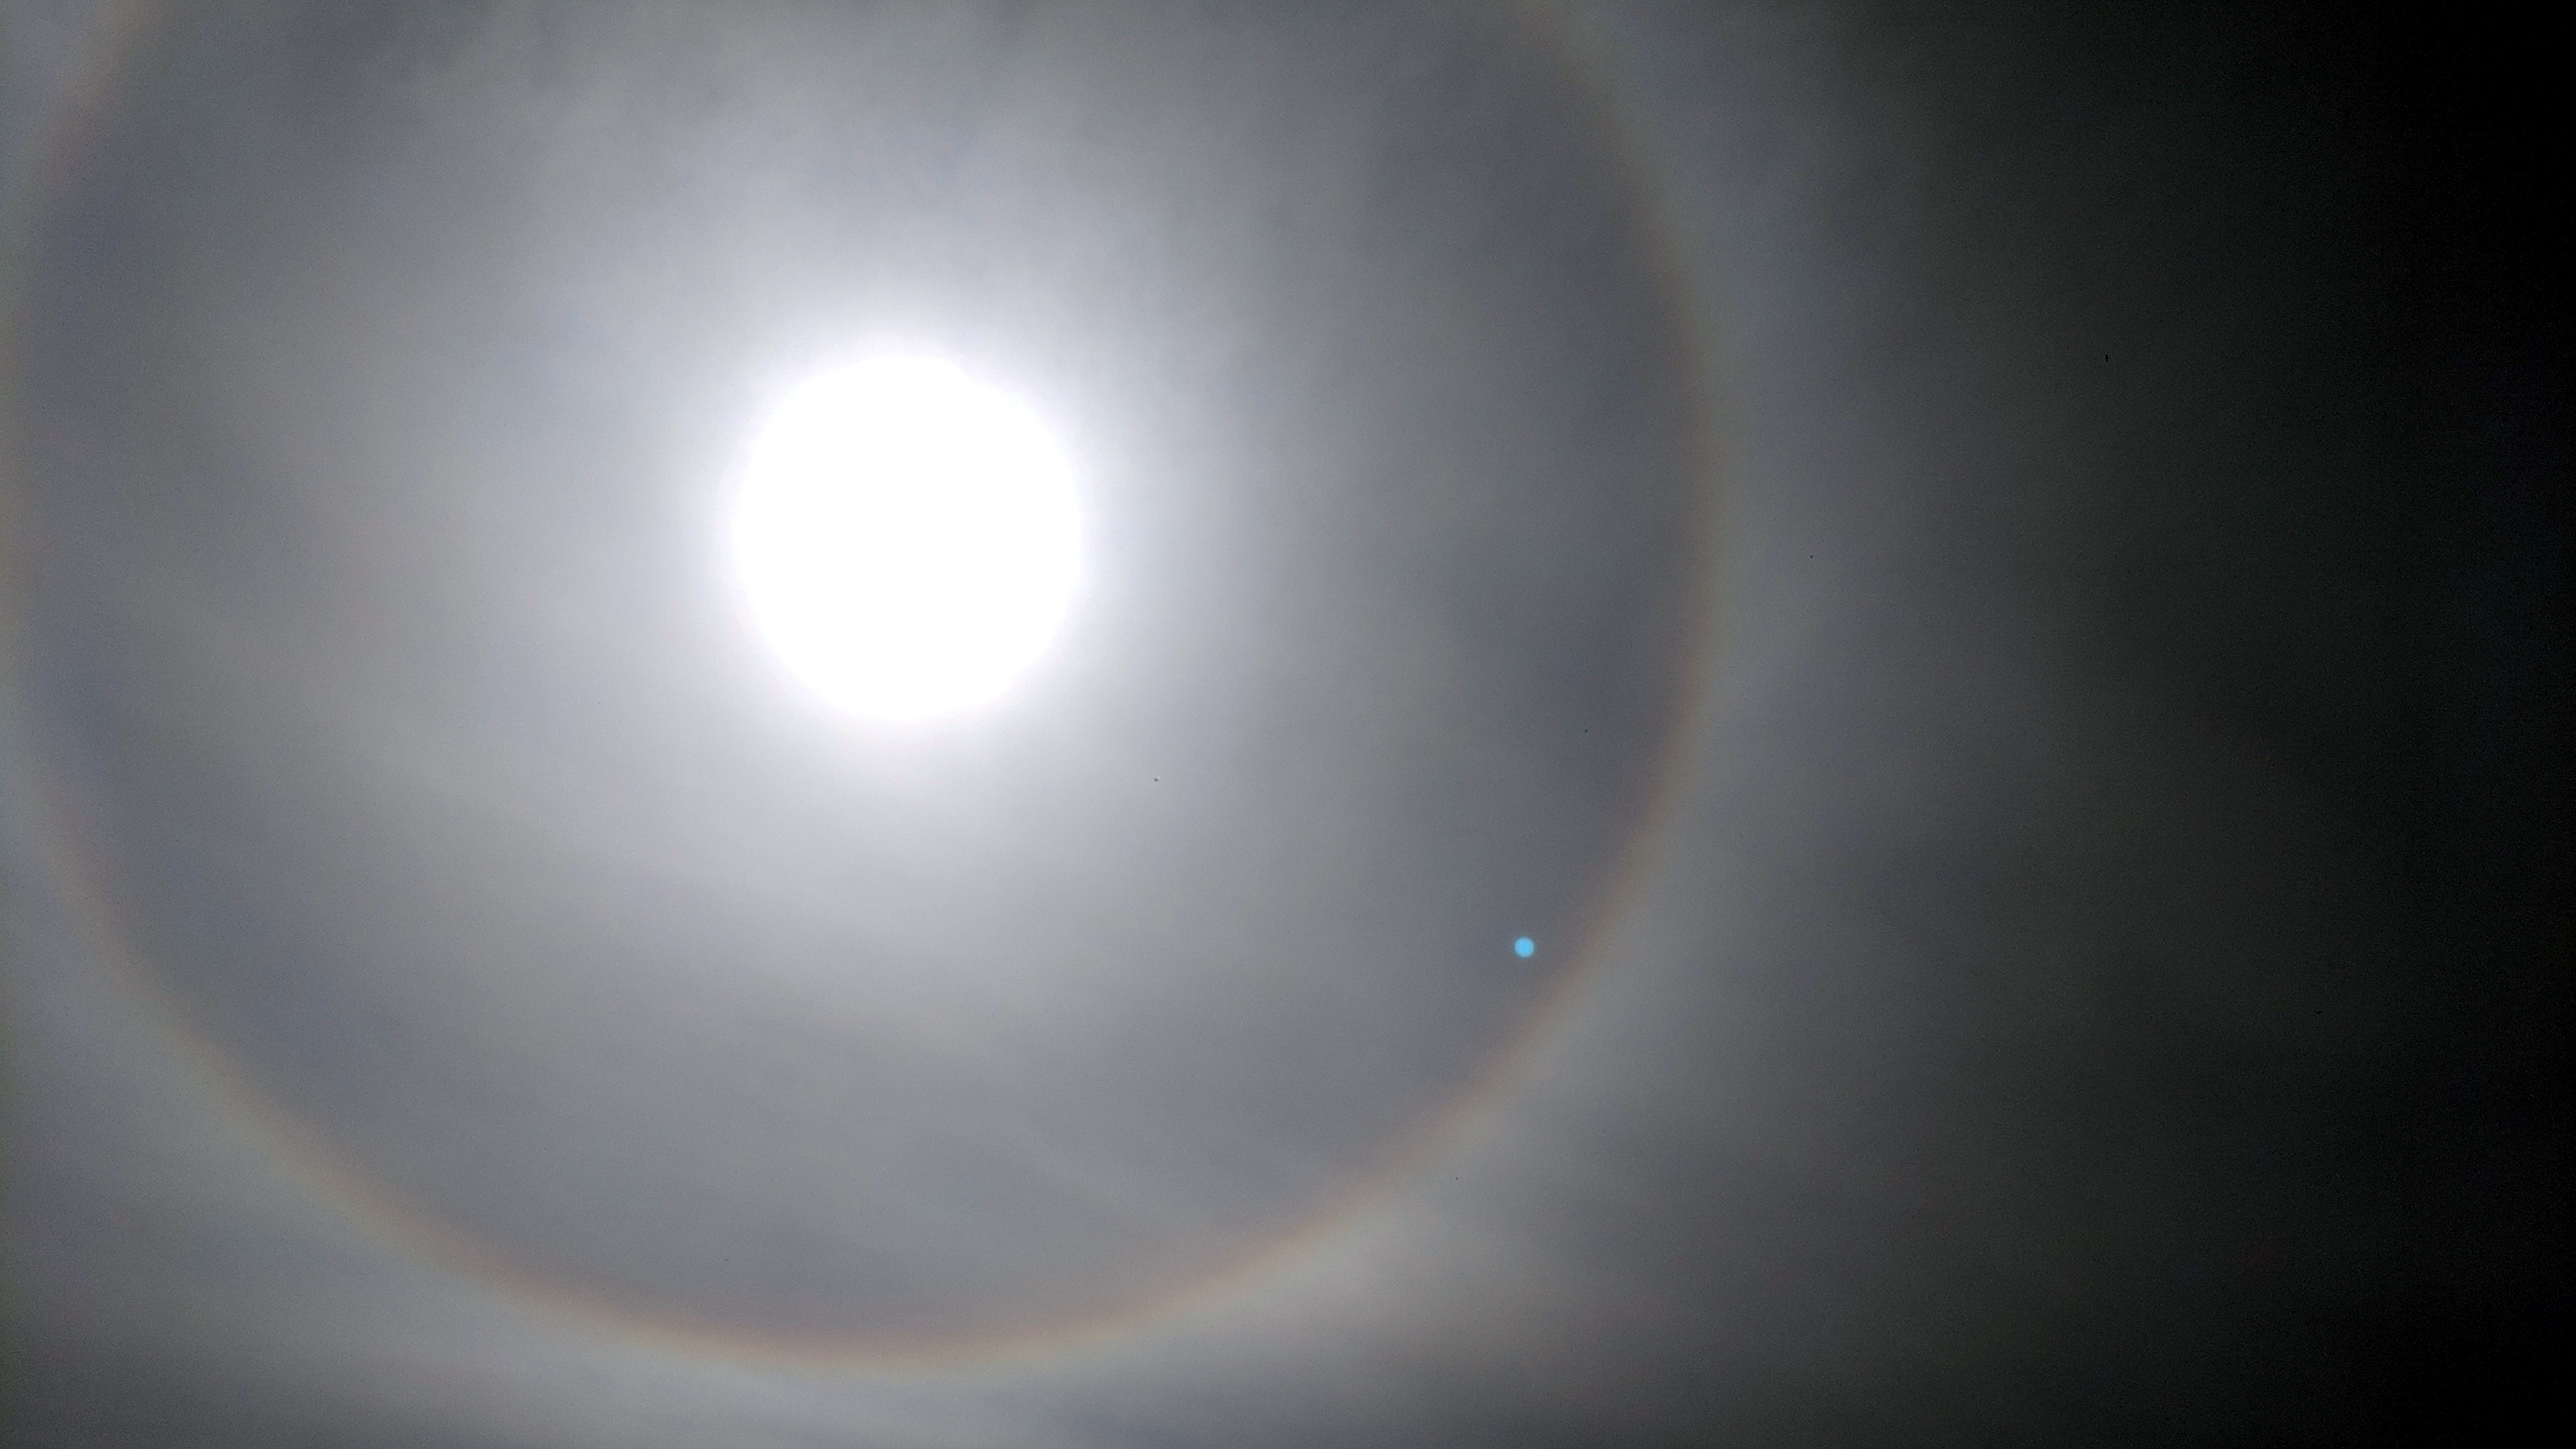 The halo effect is clearly visible in this image.